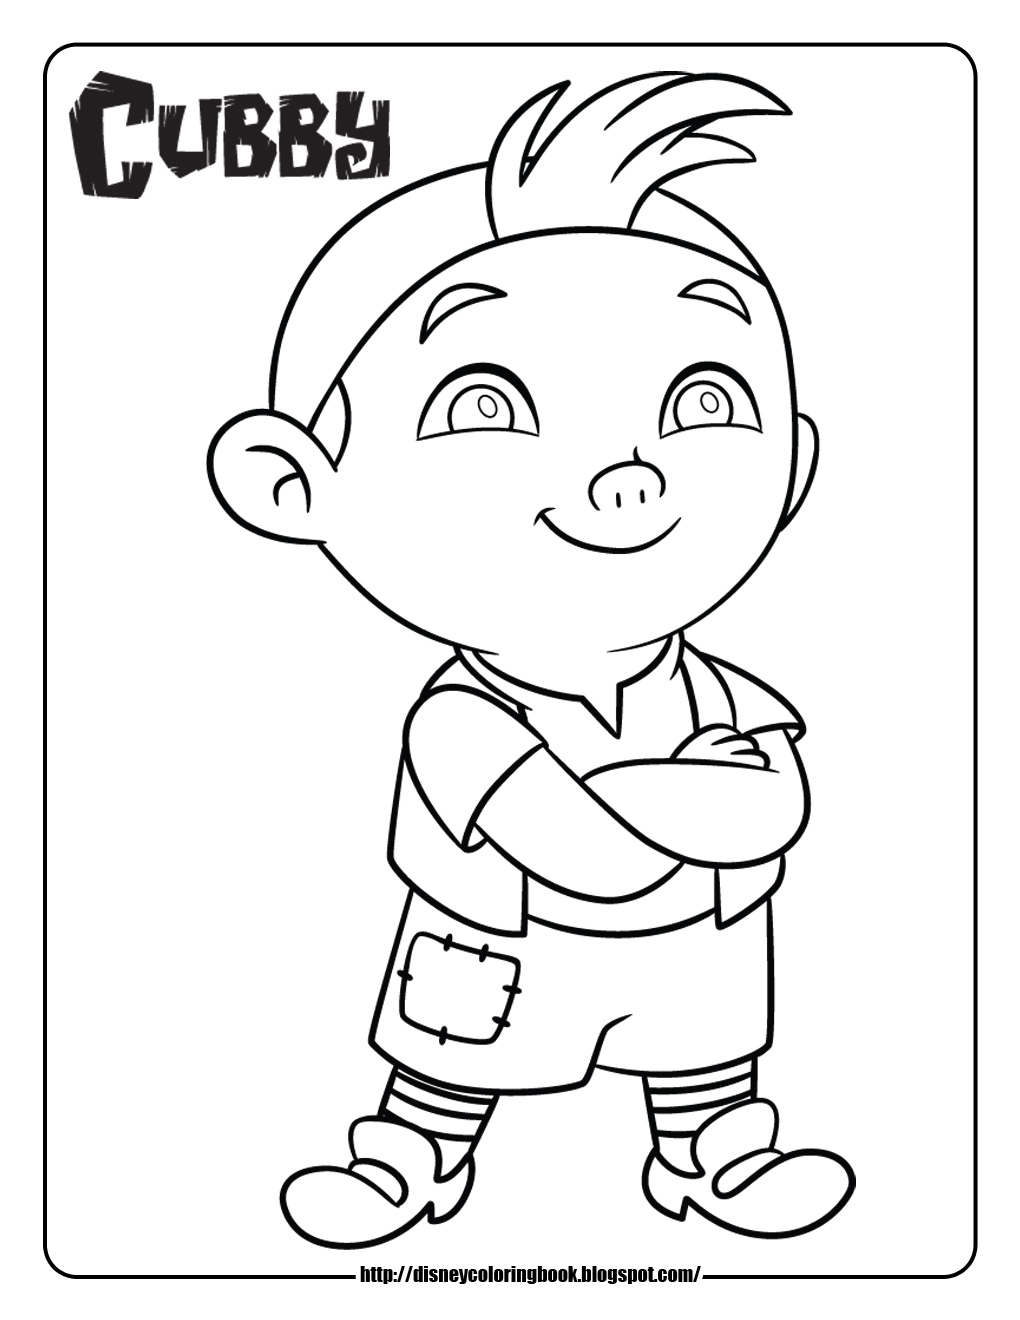 1020x1320 Jake And The Never Land Pirates Coloring Pages Coloring Sheets